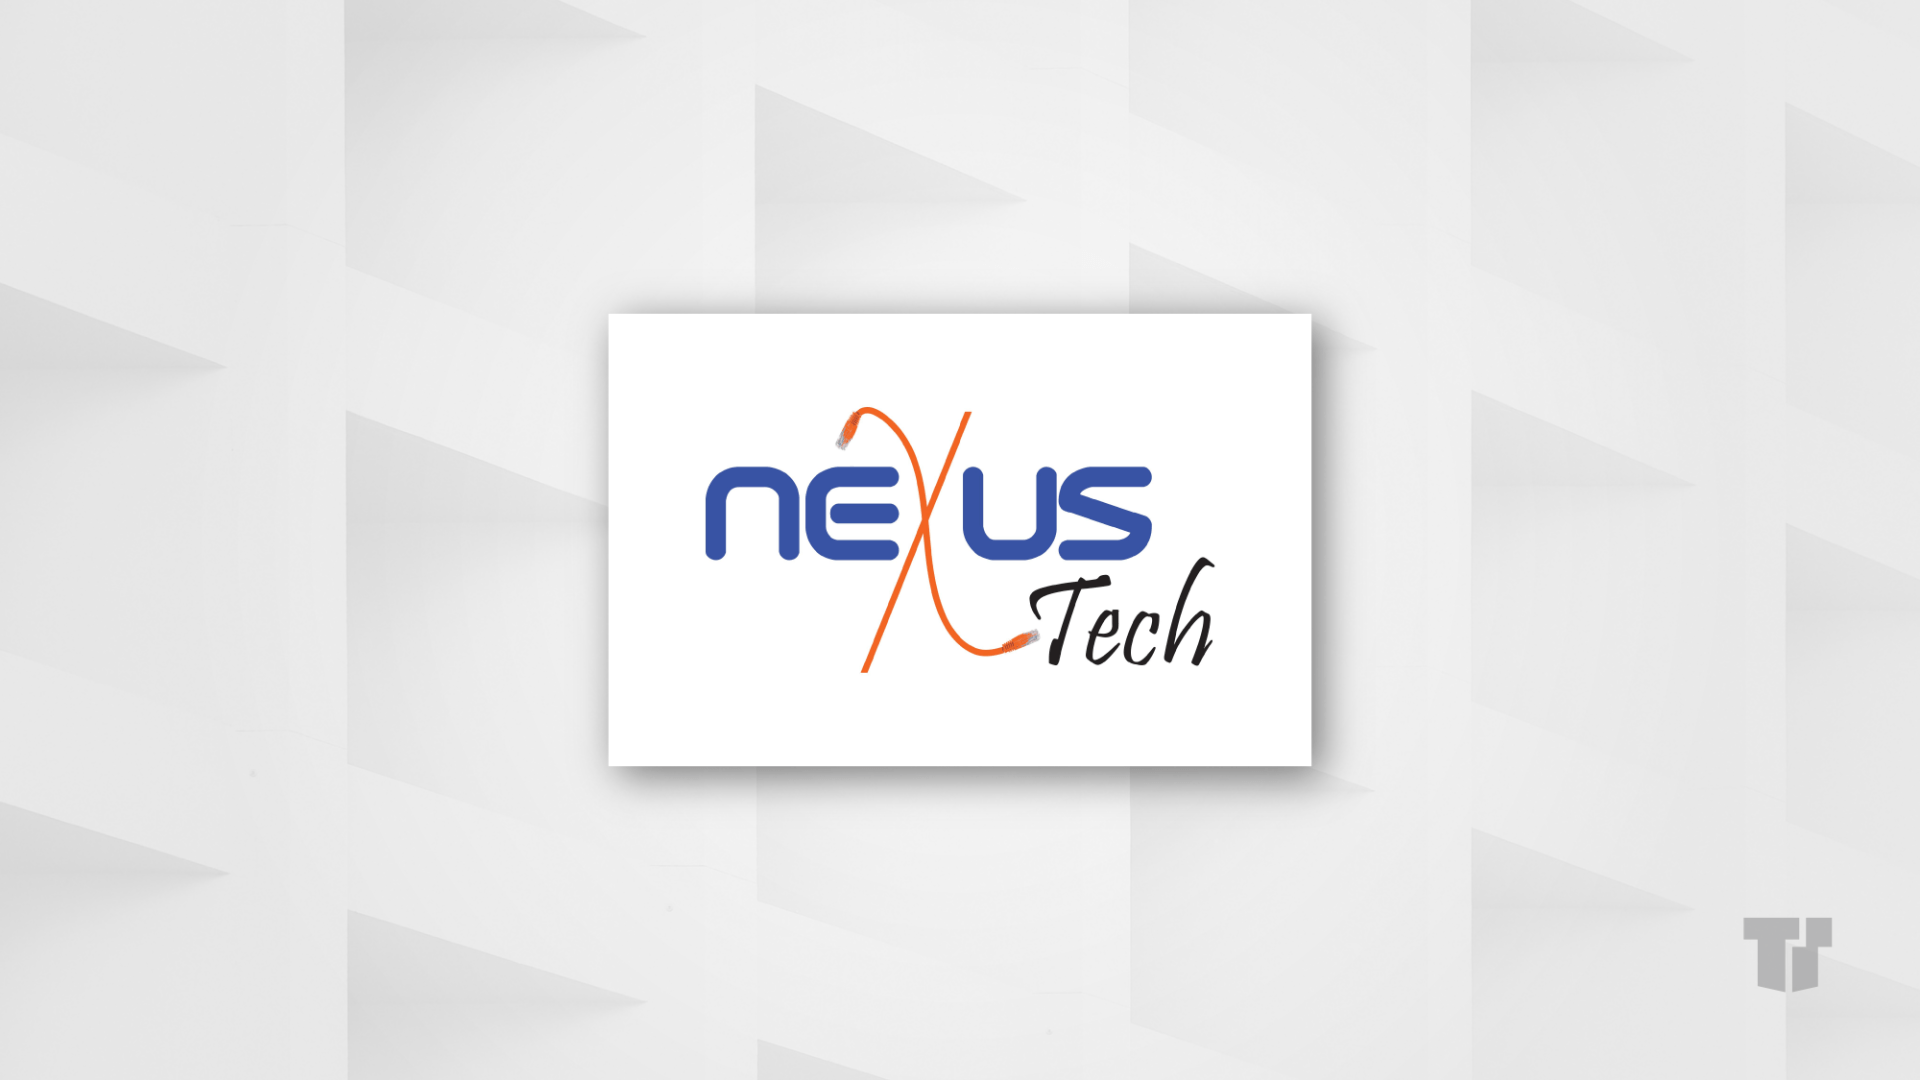 Nexus Tech cover image